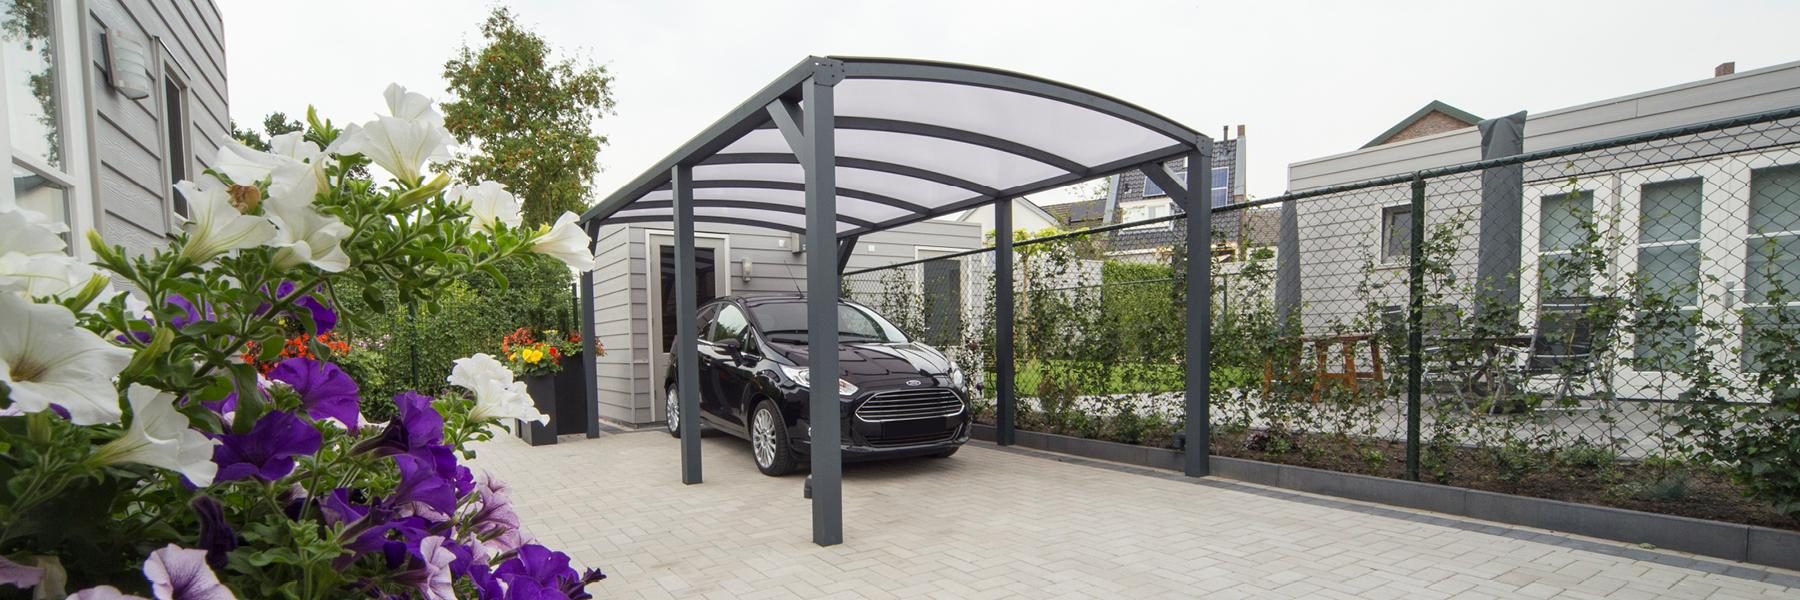 tdm-sliders-carports-1